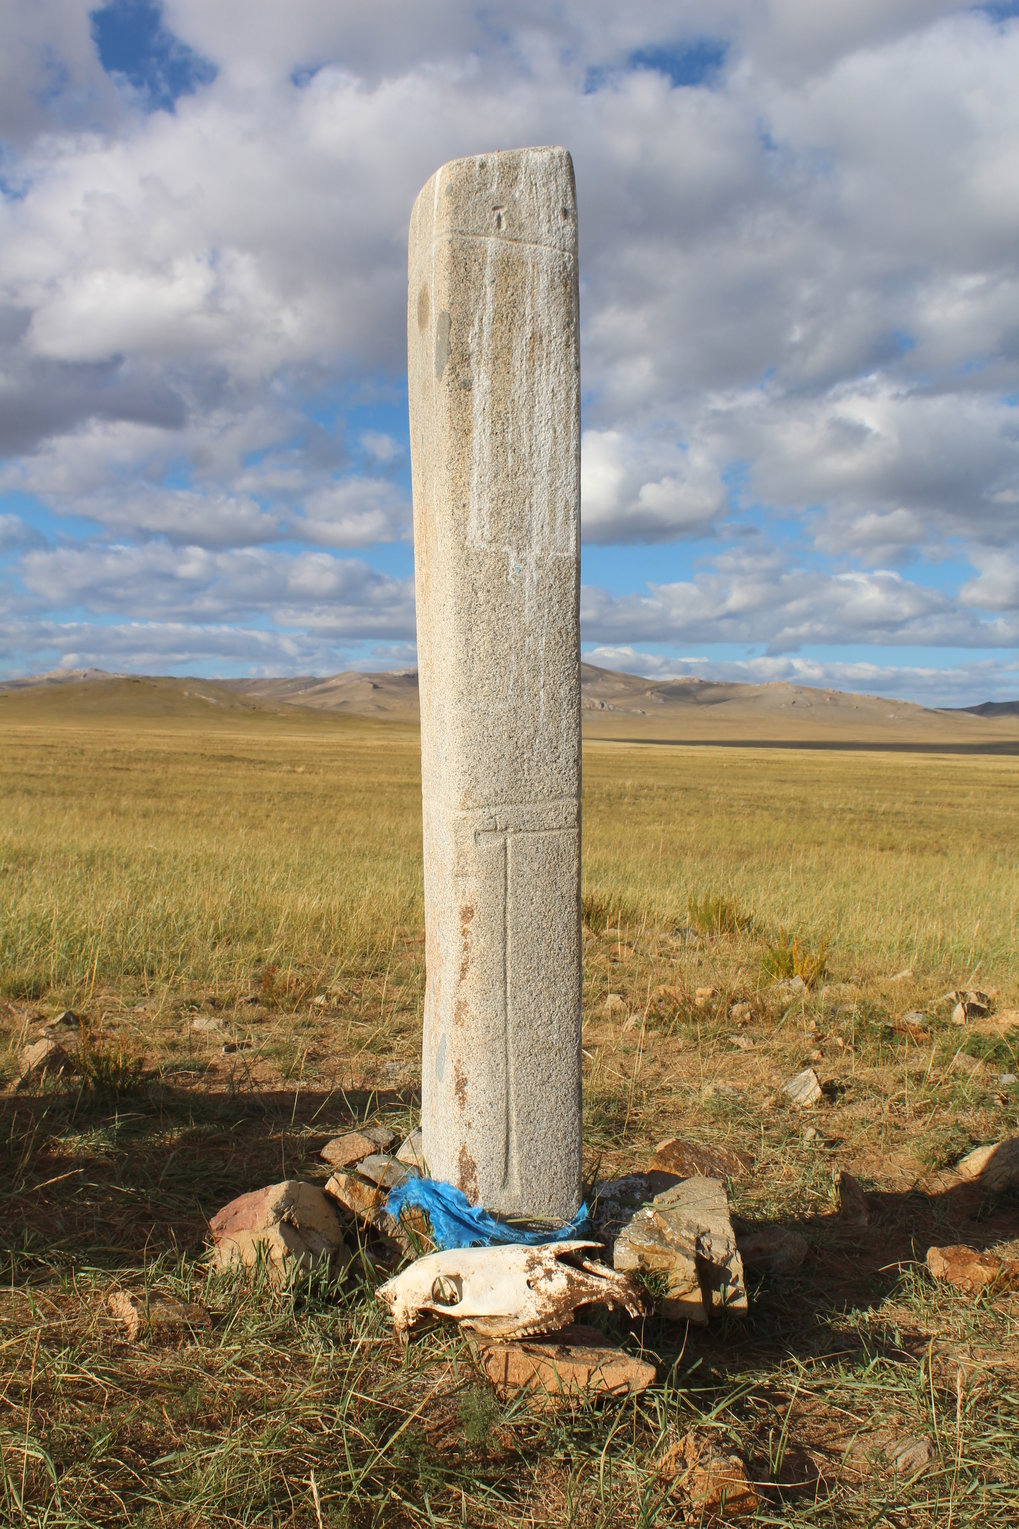 A horse skull placed next to a deer stone in central Mongolia. Horse skulls are revered by modern herders, as are deer stones – this one has been decorated with a ceremonial blue prayer scarf.